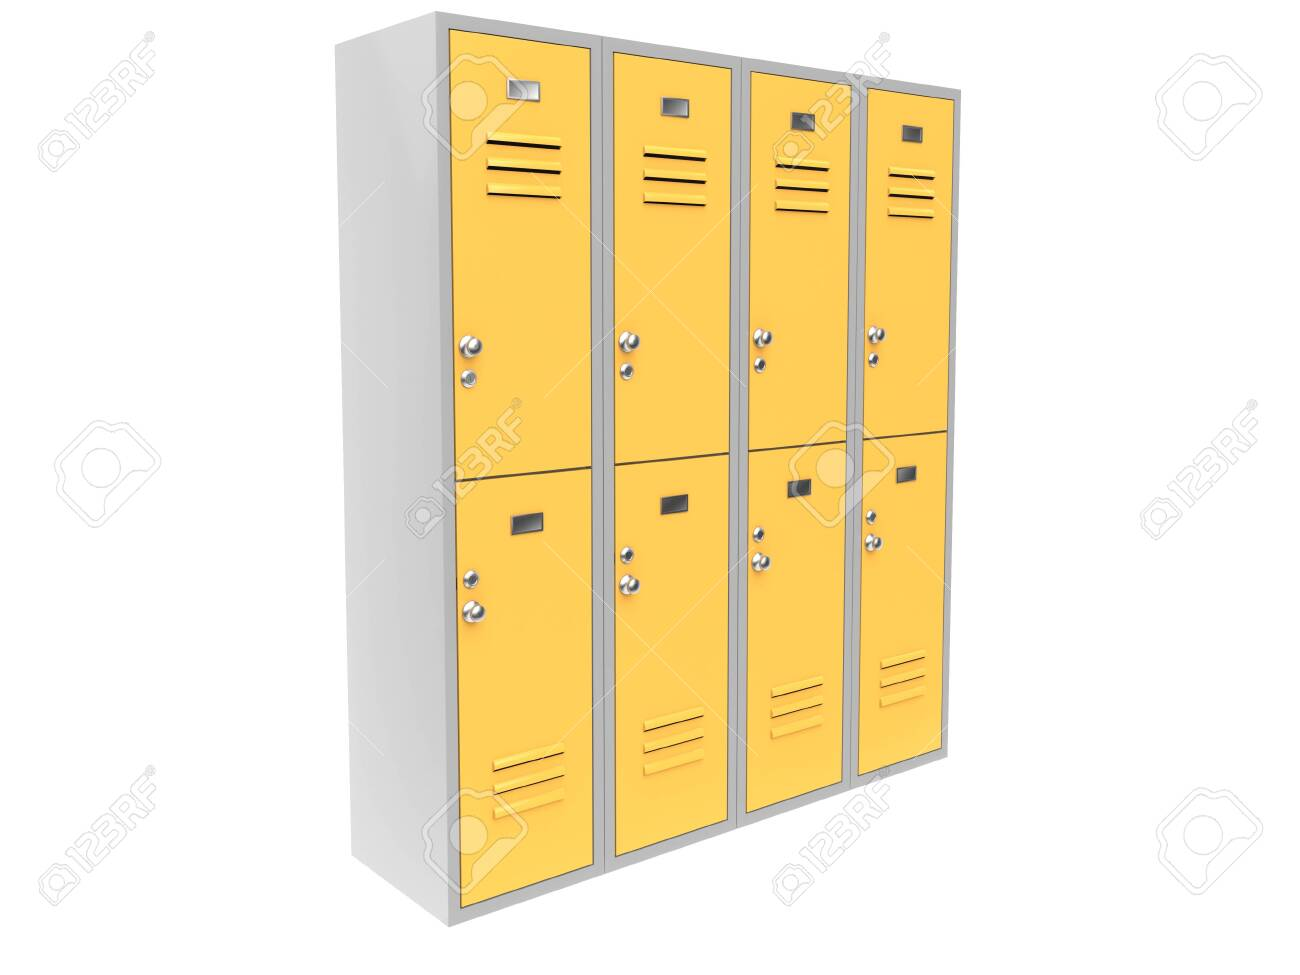 Row of yellow two level gym lockers. 3d rendering illustration isolated on white background - 150186355